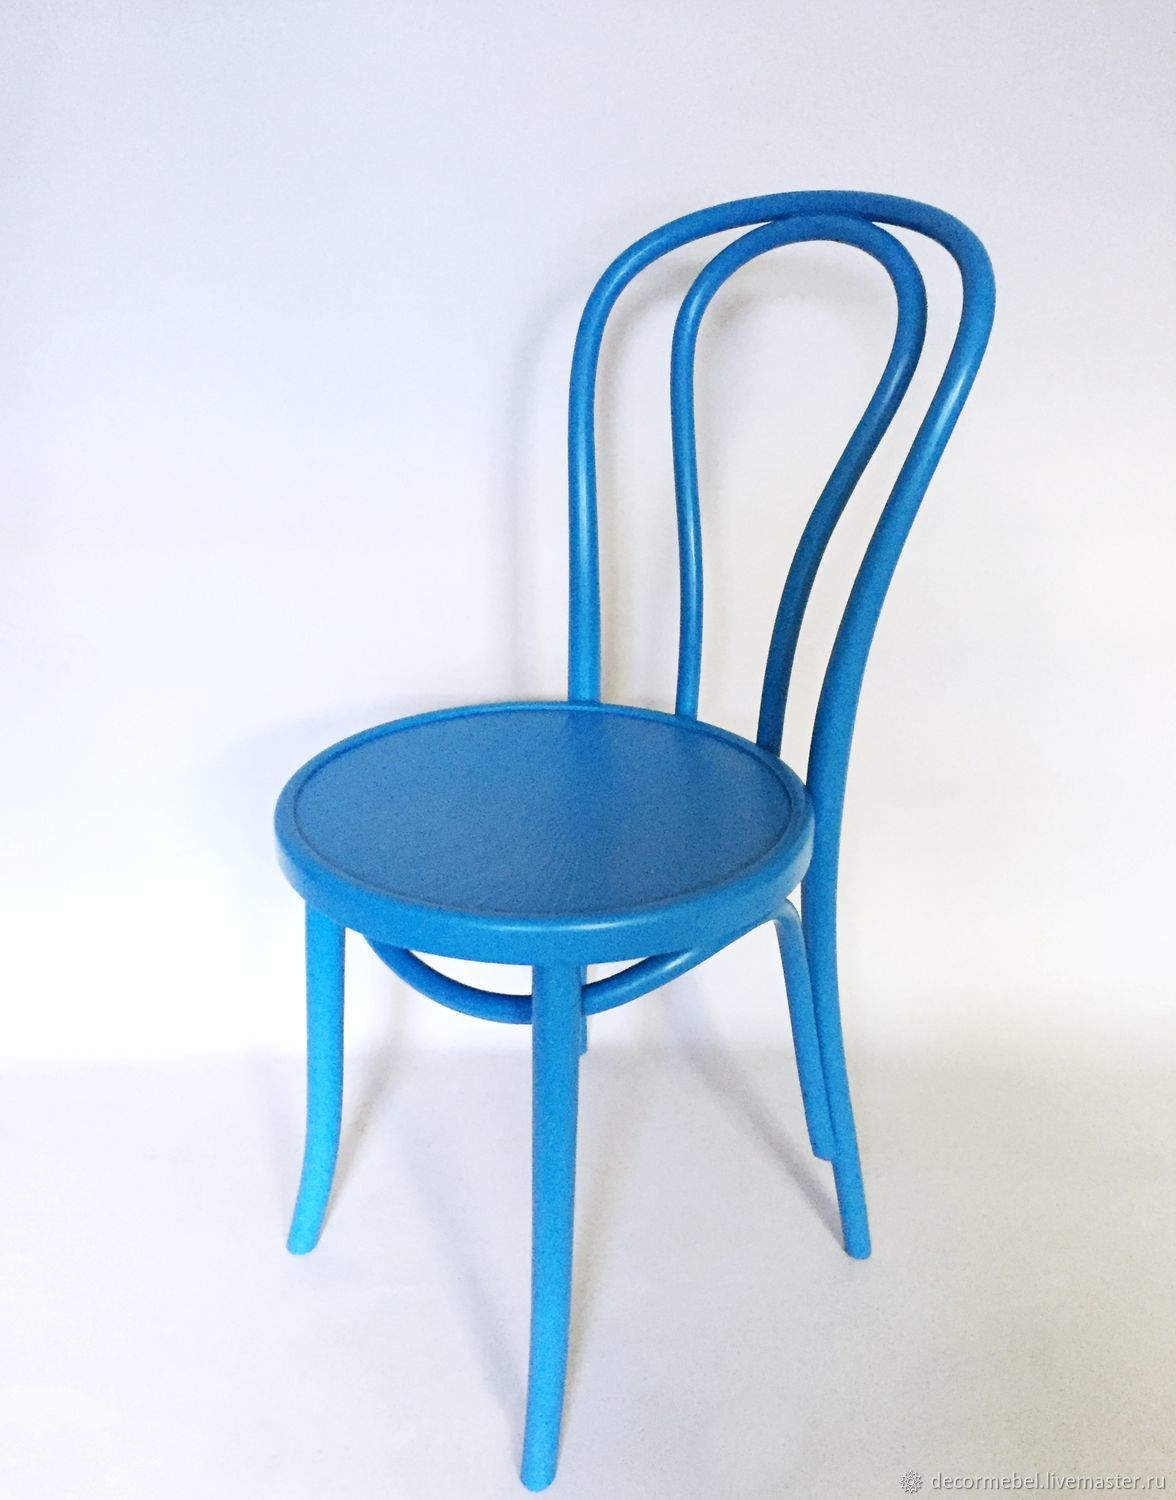 Blue · Furniture Handmade. Tiffany Blue Chair Vintage. Decor Mebel. My  Livemaster.Tiffany